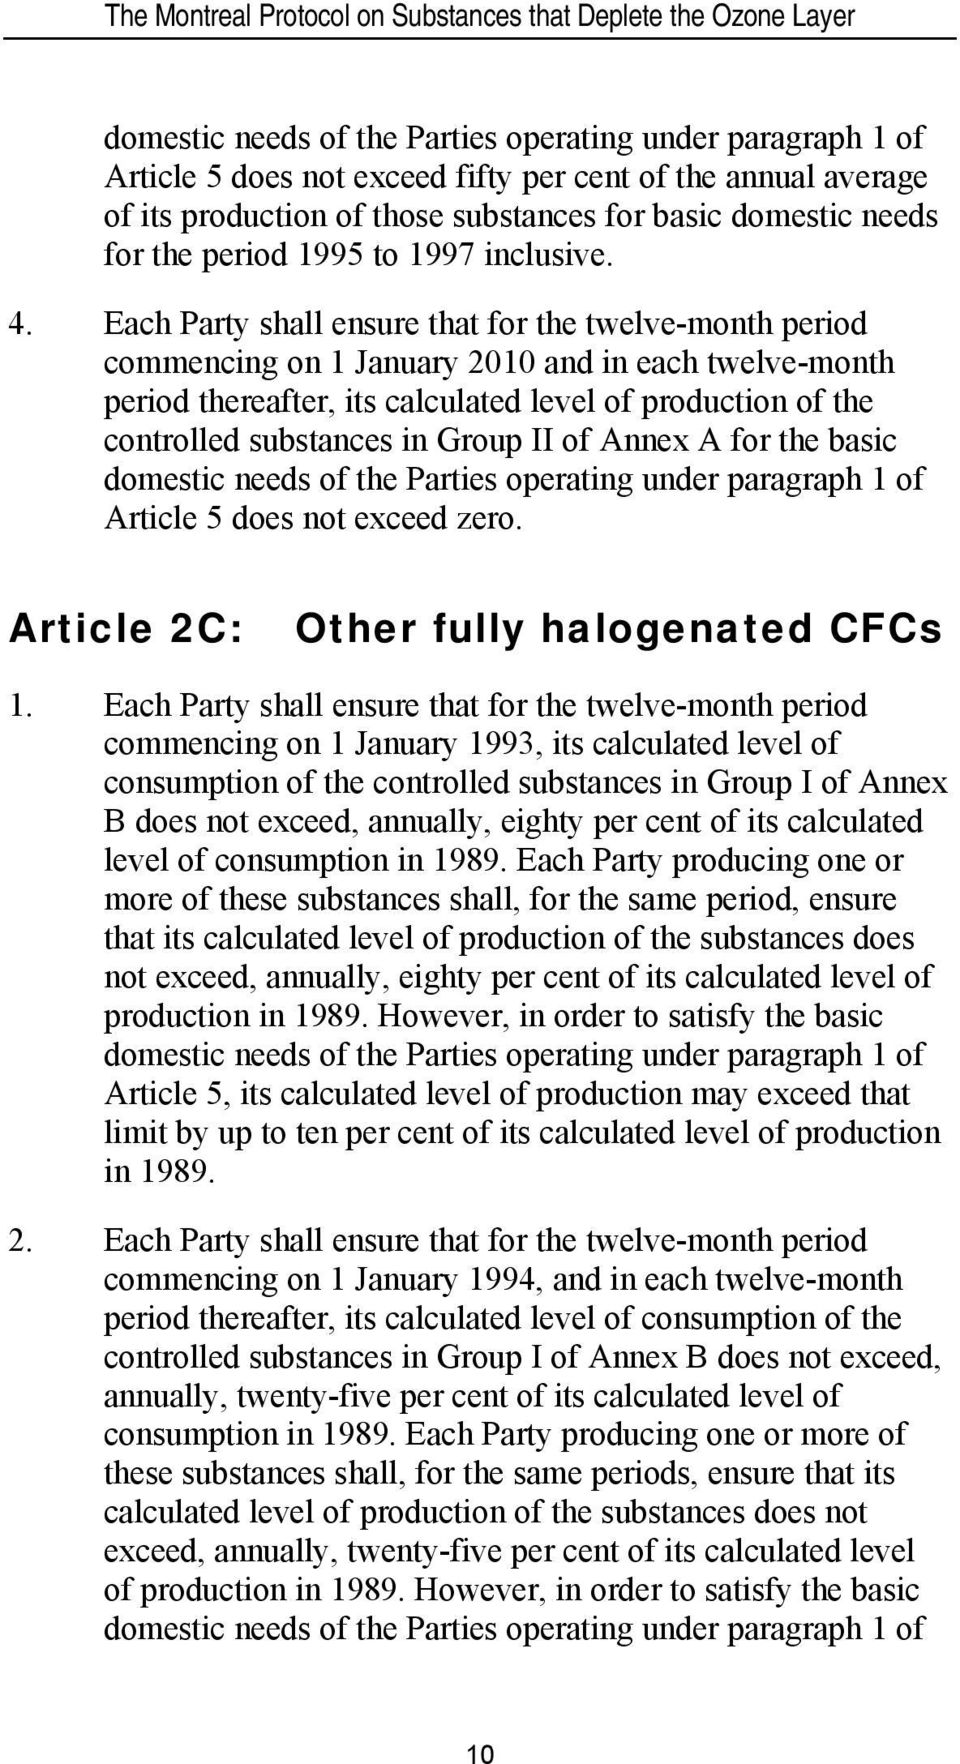 Each Party shall ensure that for the twelve-month period commencing on 1 January 2010 and in each twelve-month period thereafter, its calculated level of production of the controlled substances in